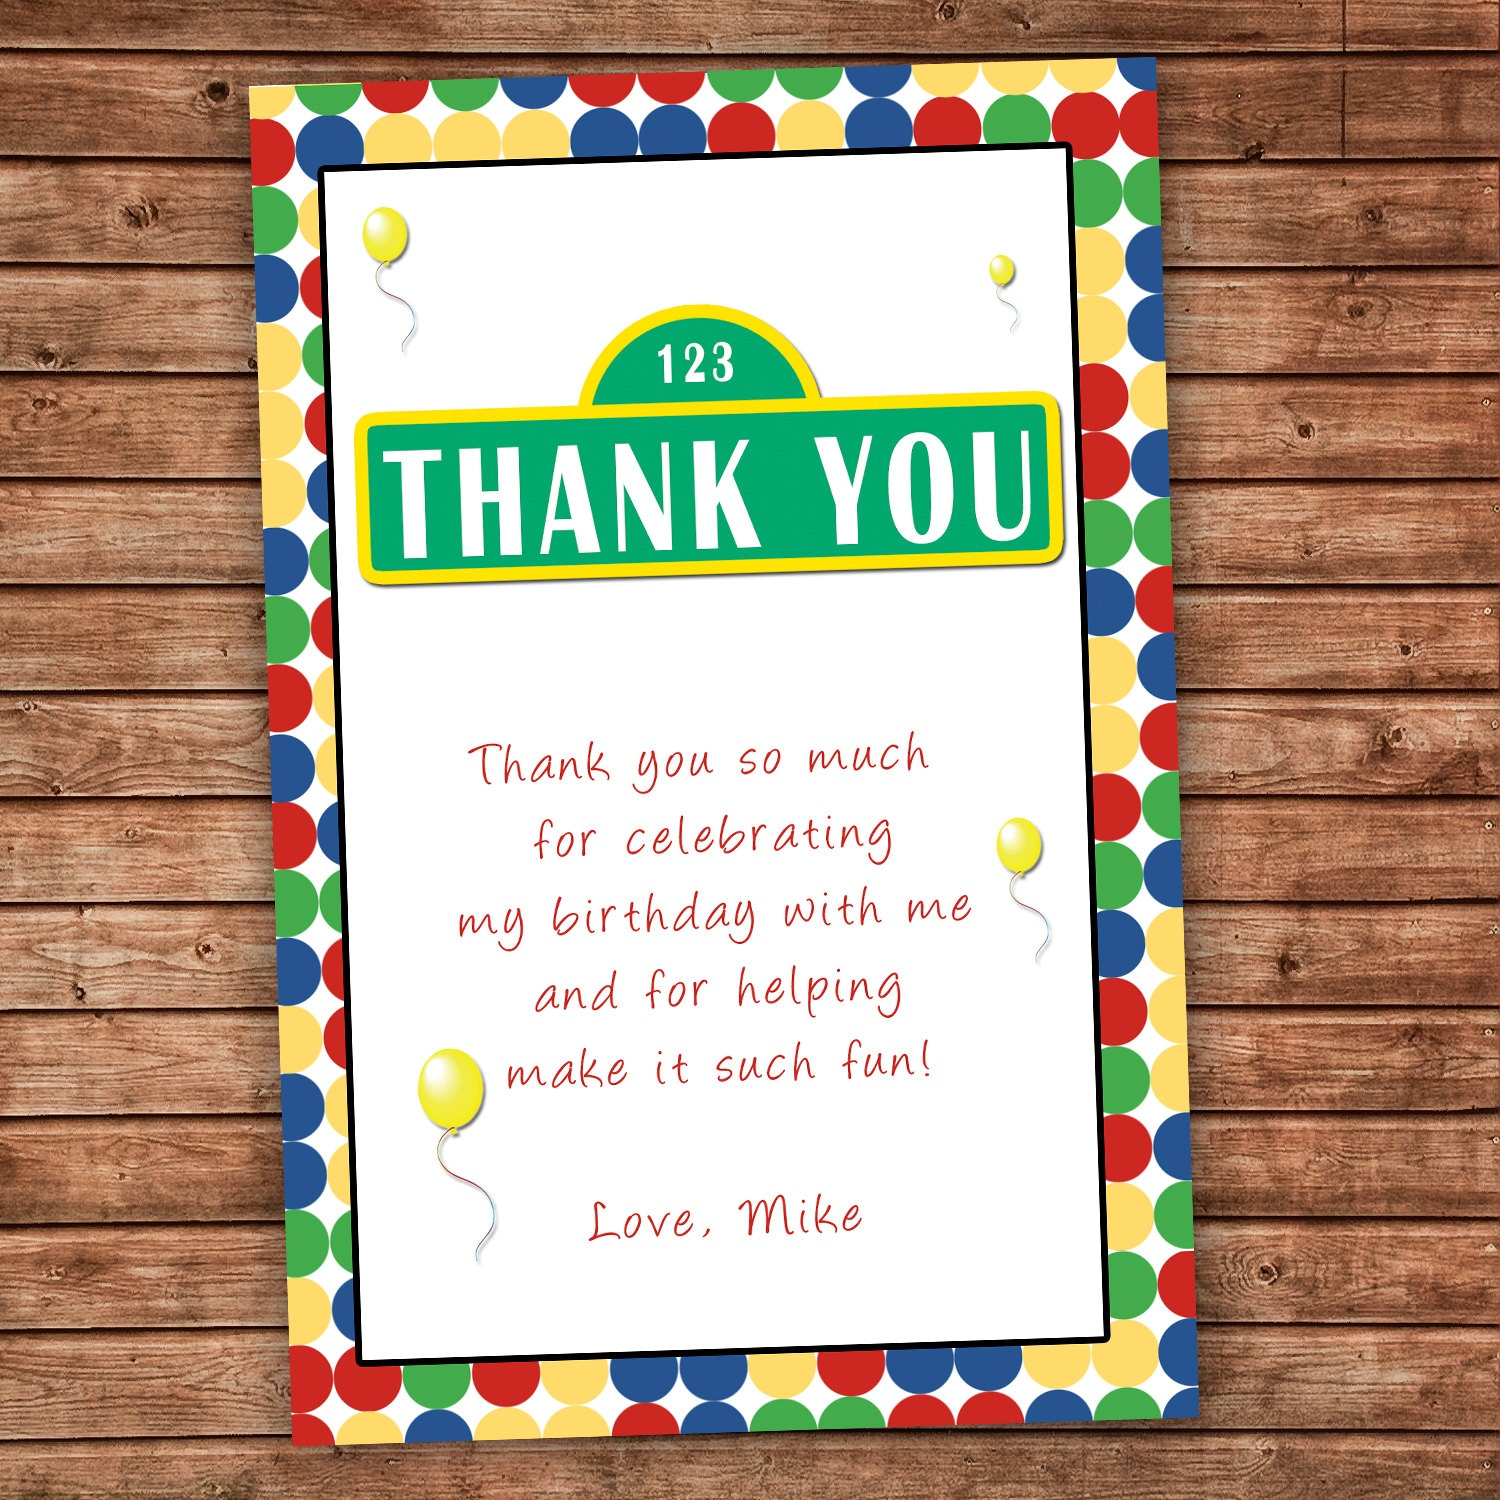 Watch more like Thank You Wording For Party – Thank You Card Wording for Birthday Gift